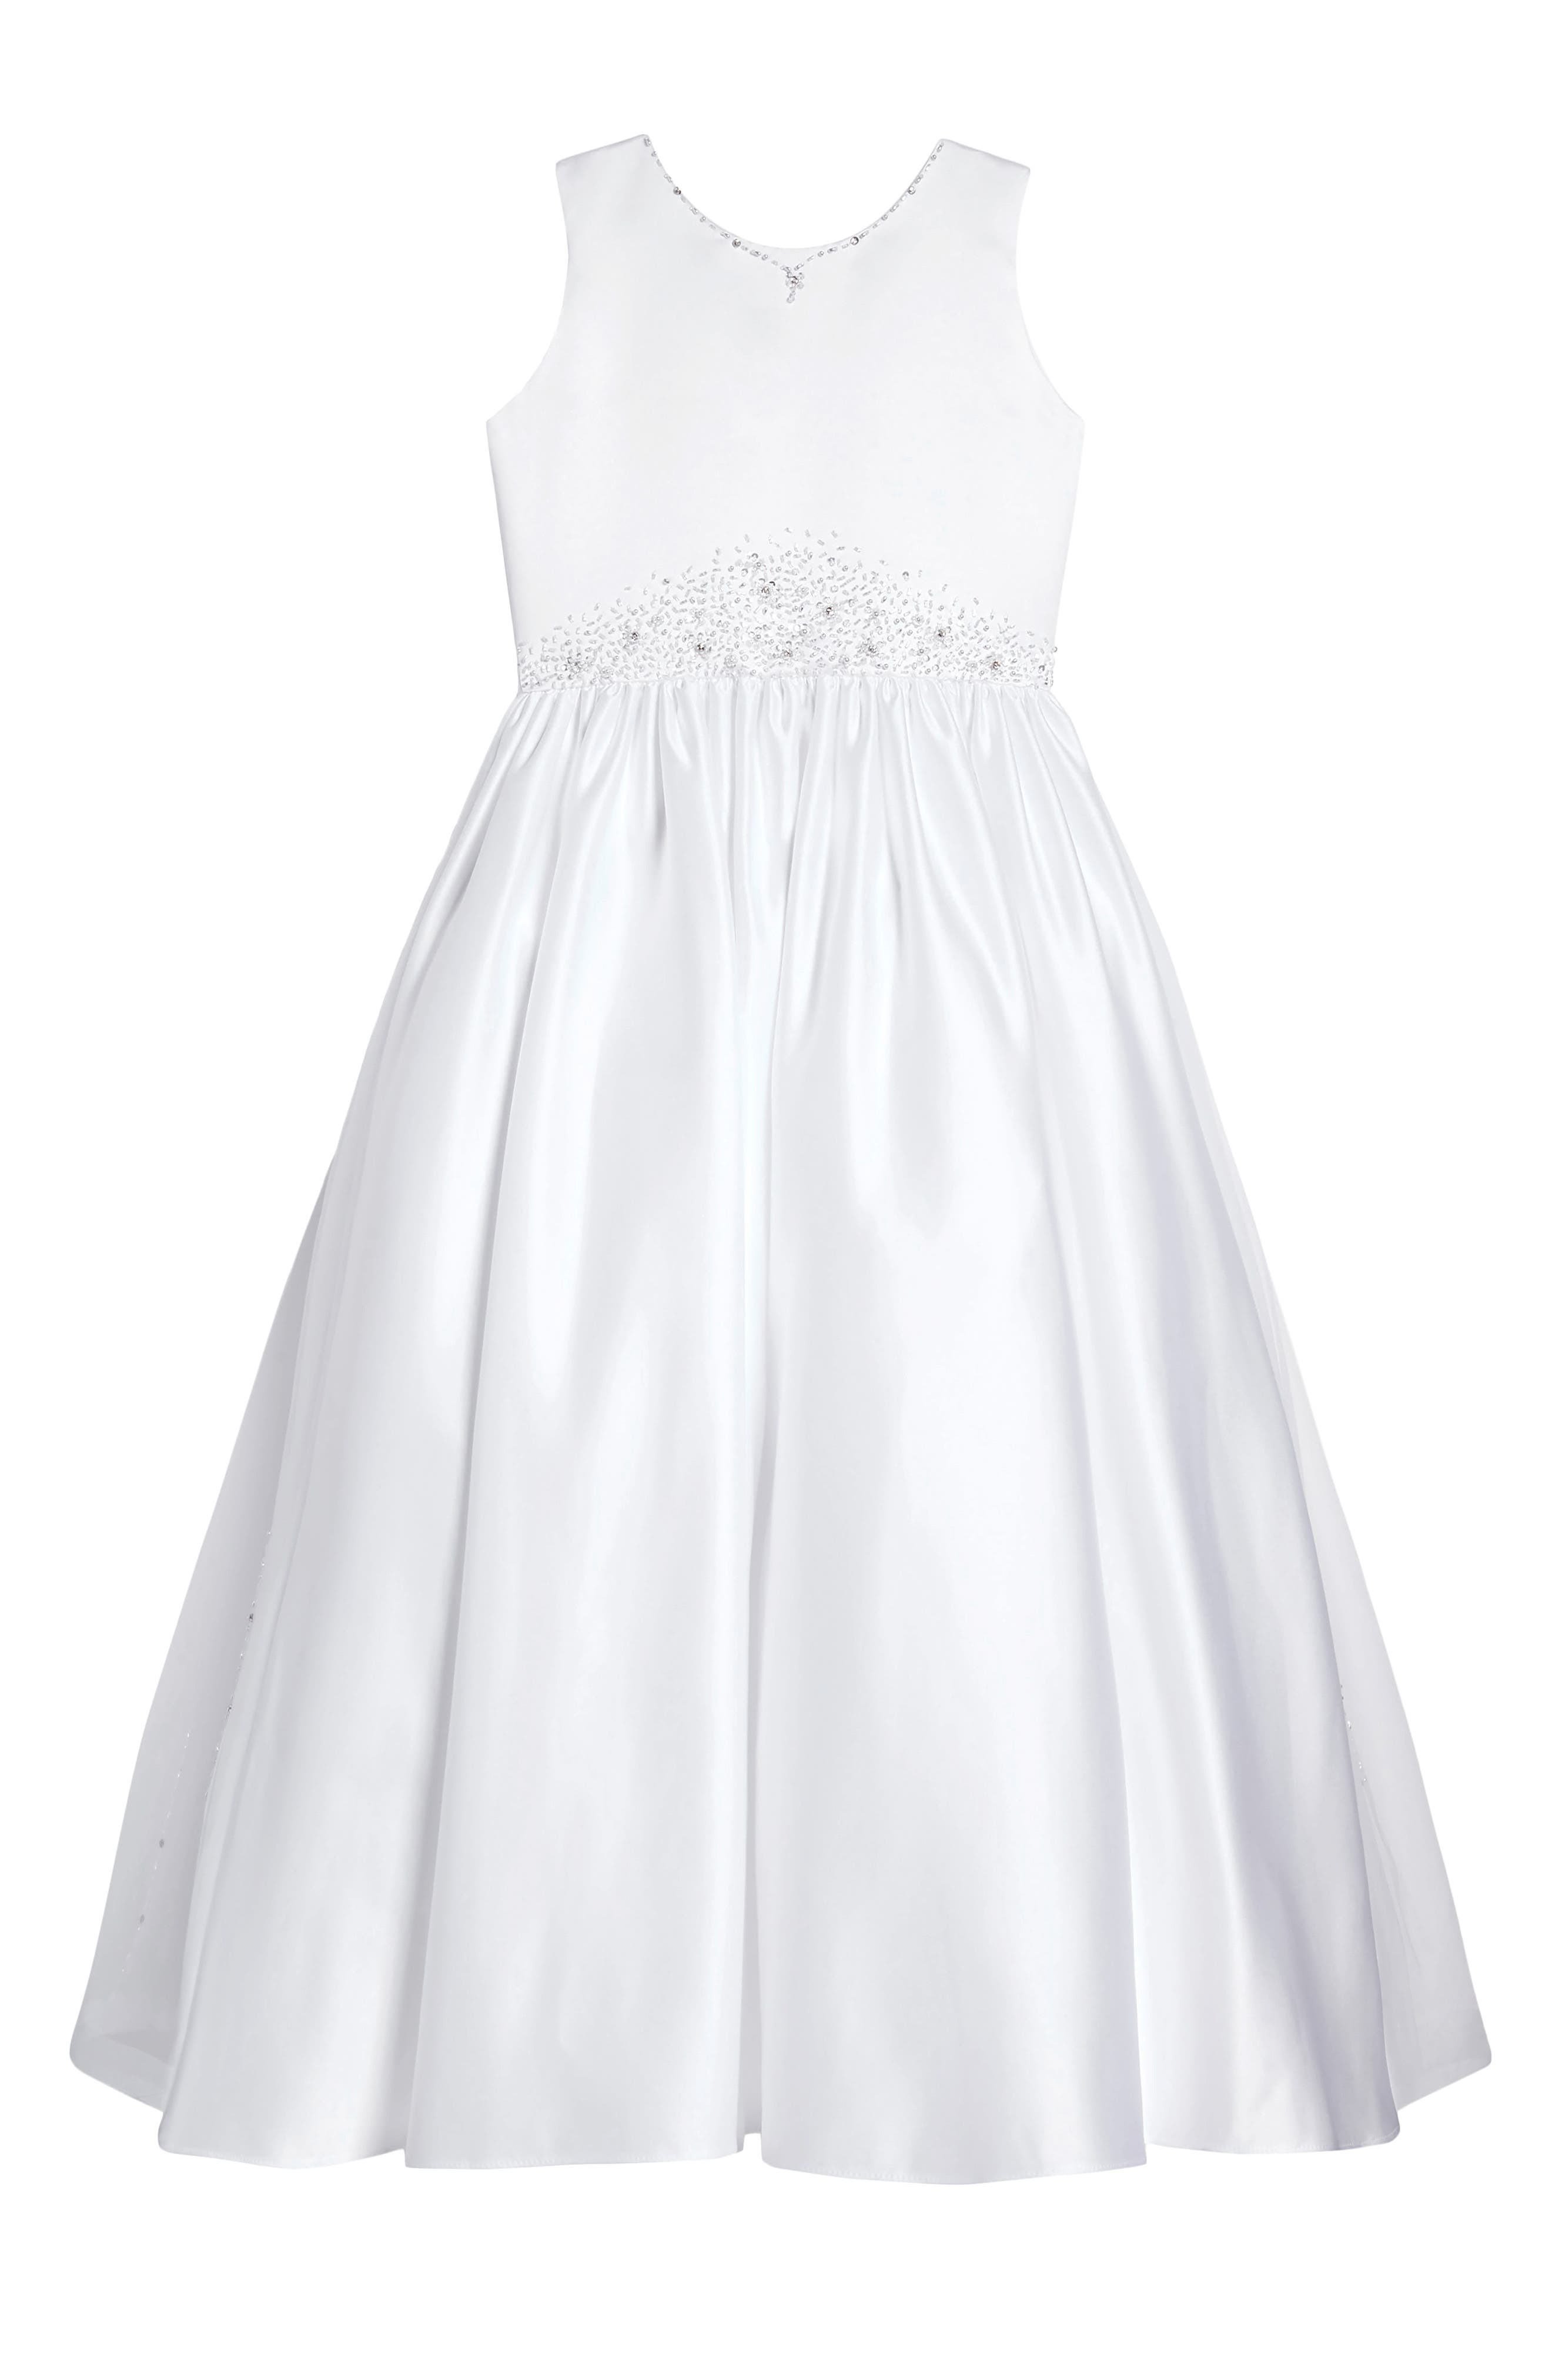 Satin & Tulle First Communion Dress,                             Main thumbnail 1, color,                             100